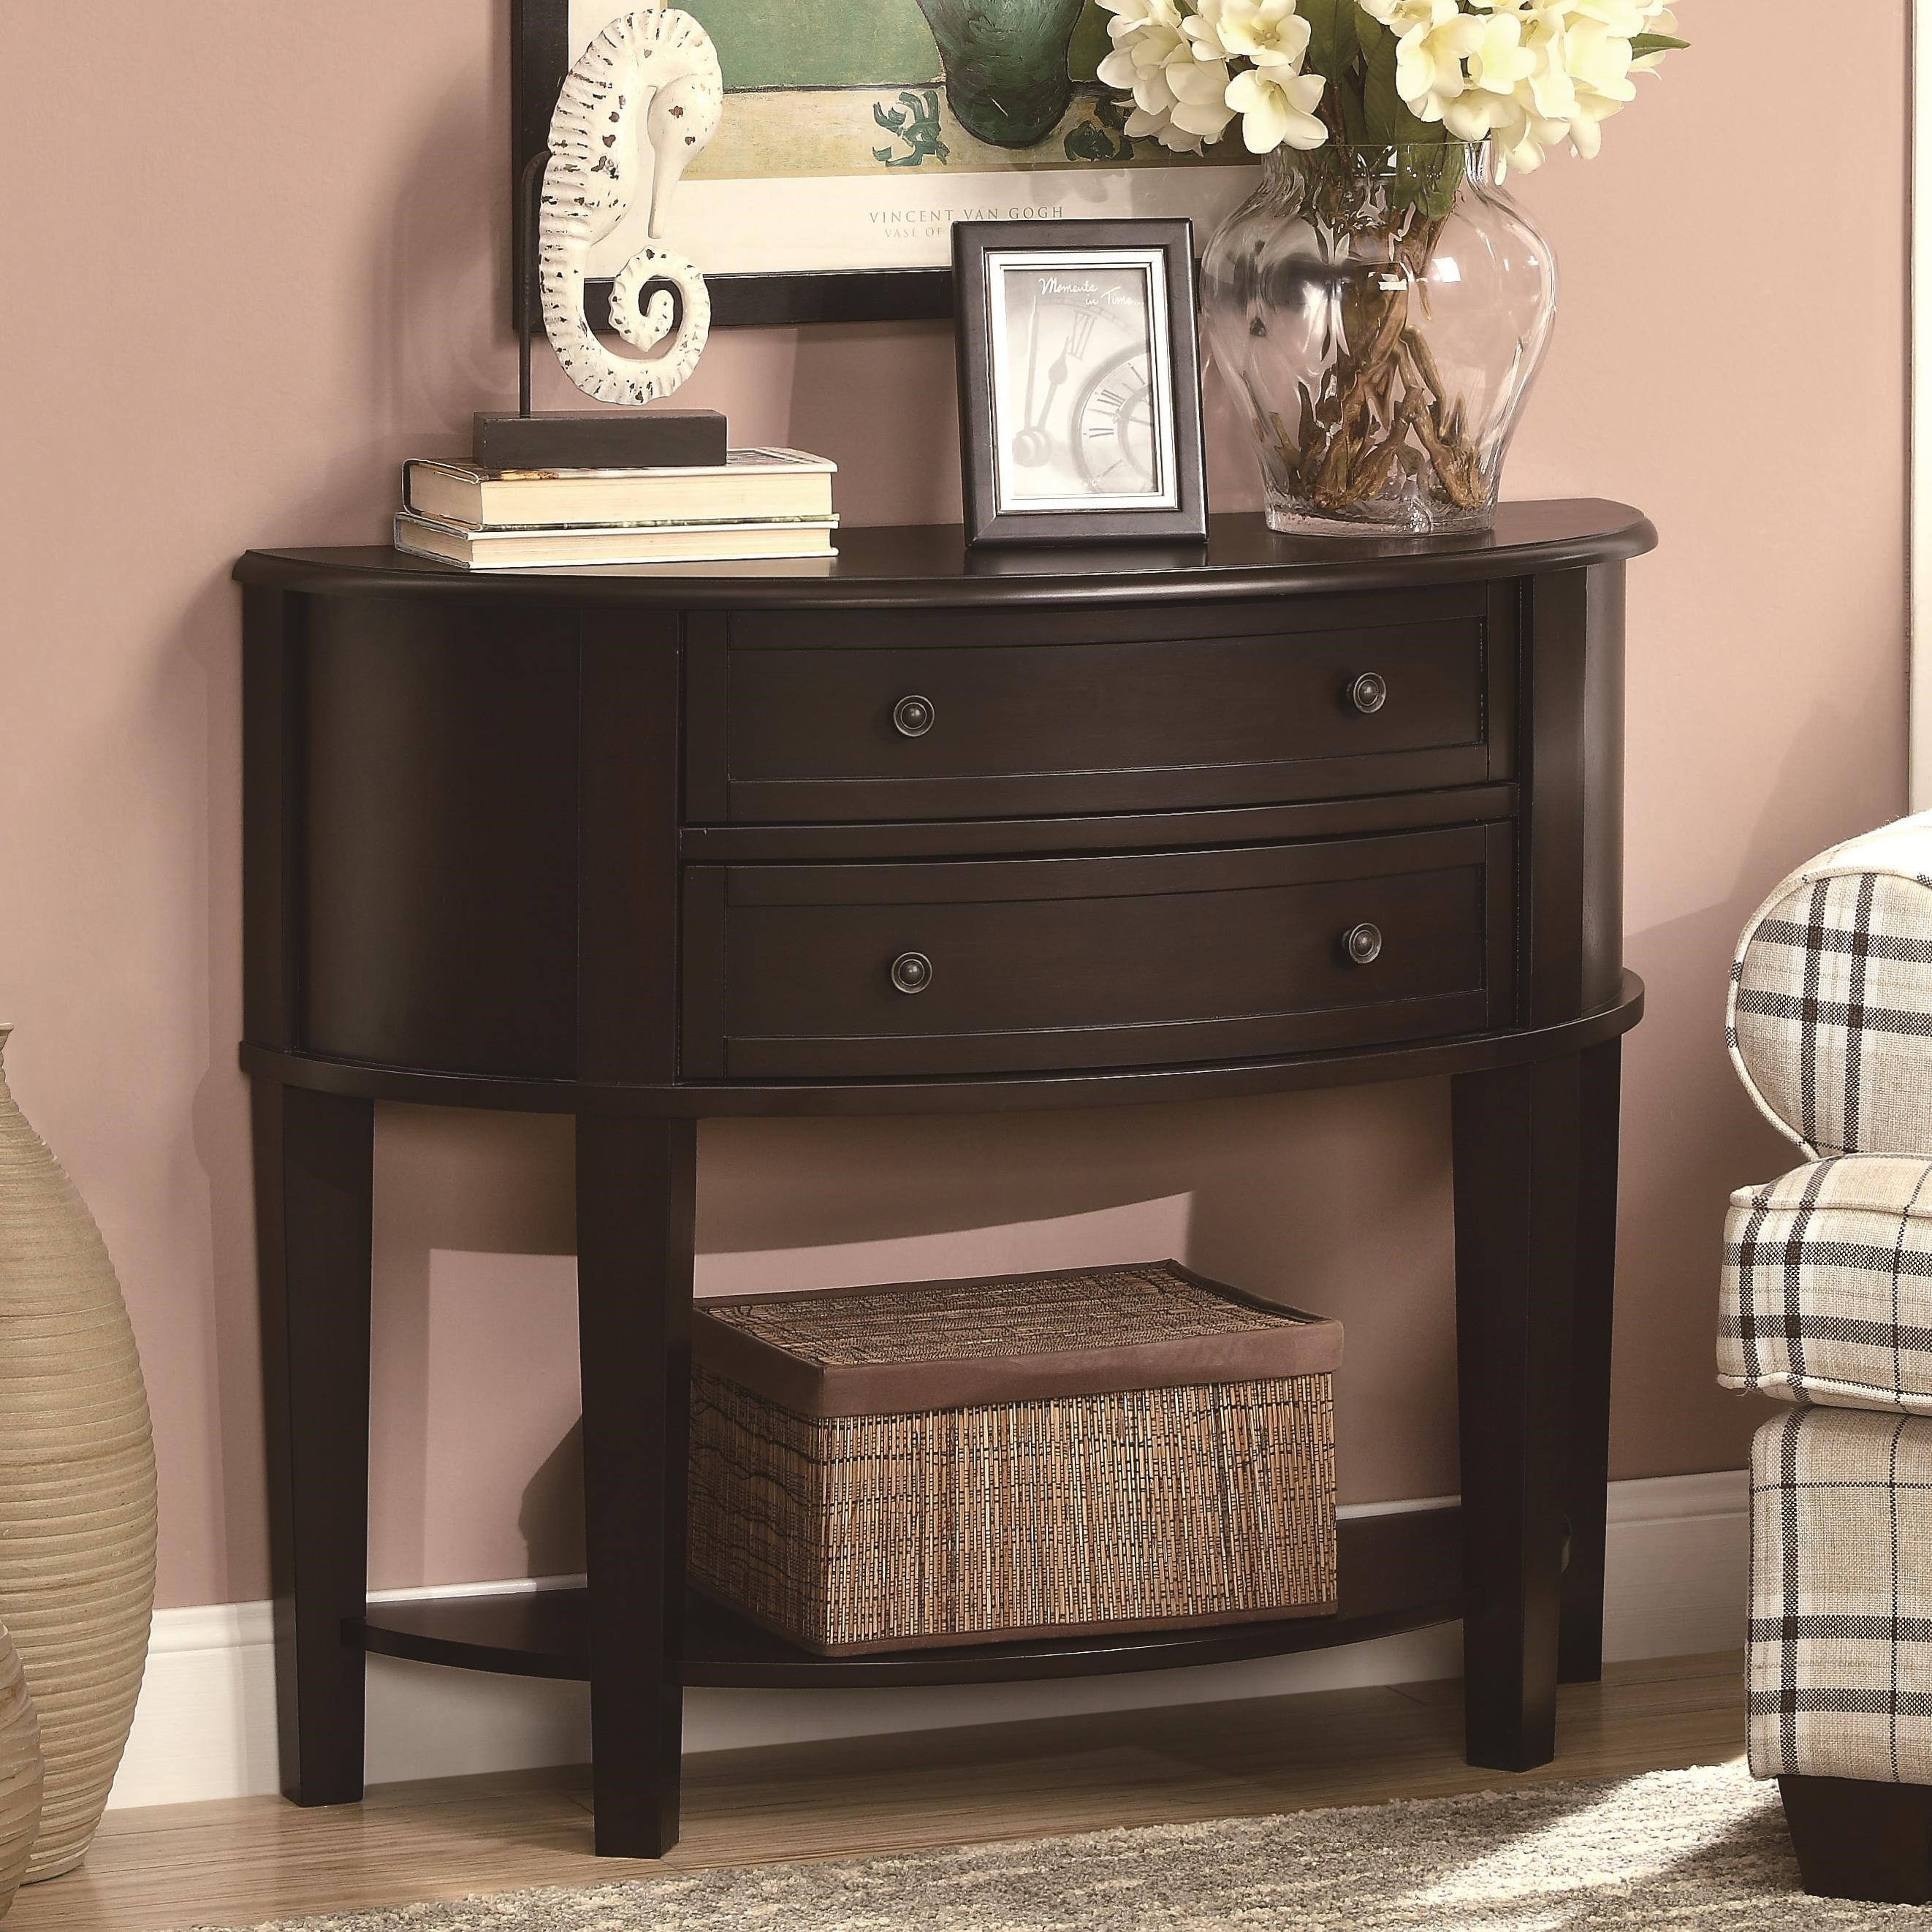 Coaster Accent Tables Demilune Entry Sofa Table